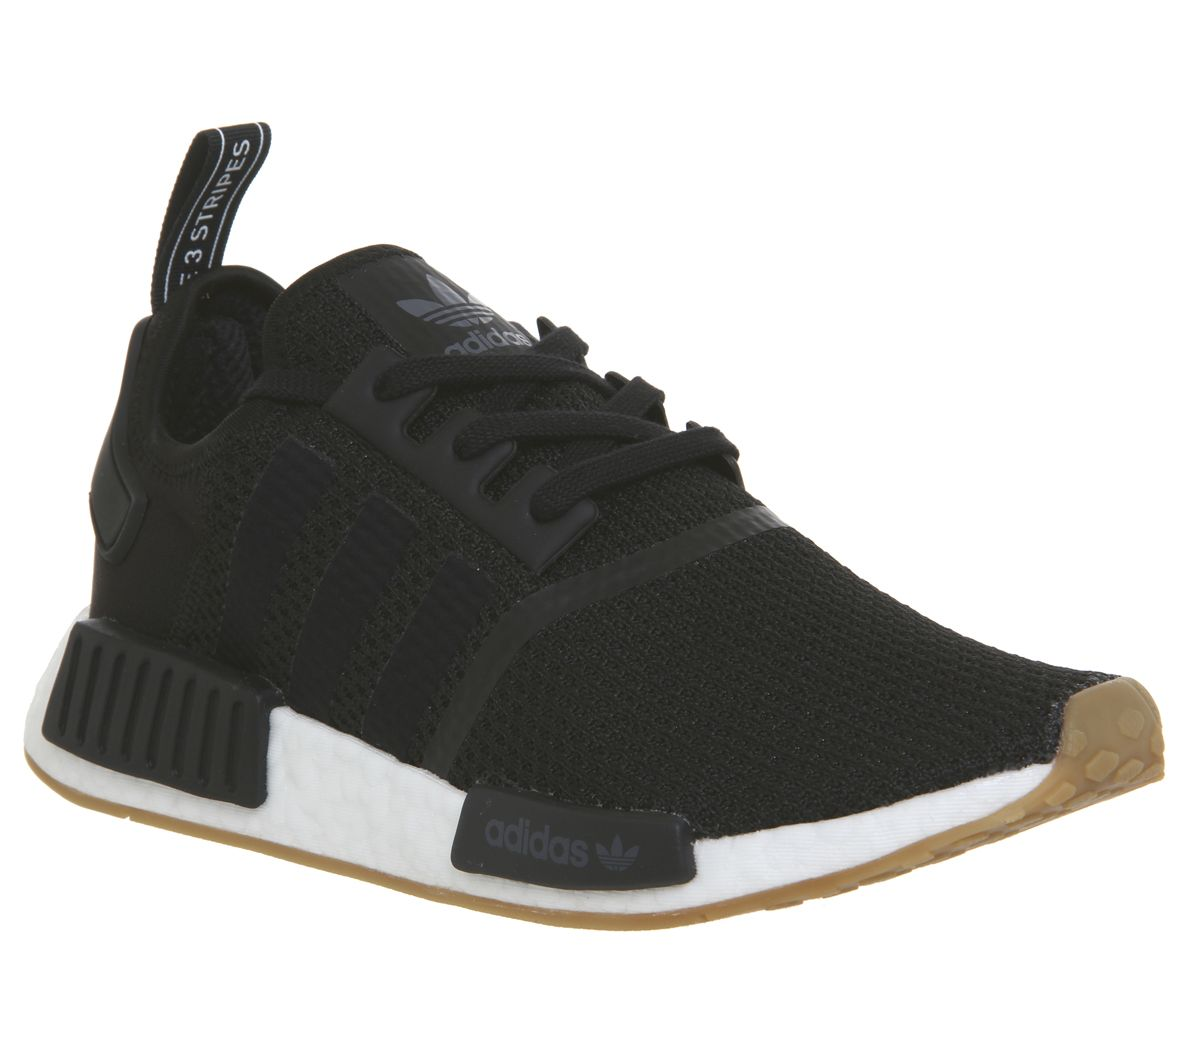 6ad3868a0 adidas Nmd R1 Trainers Core Black Core Black Gum - His trainers